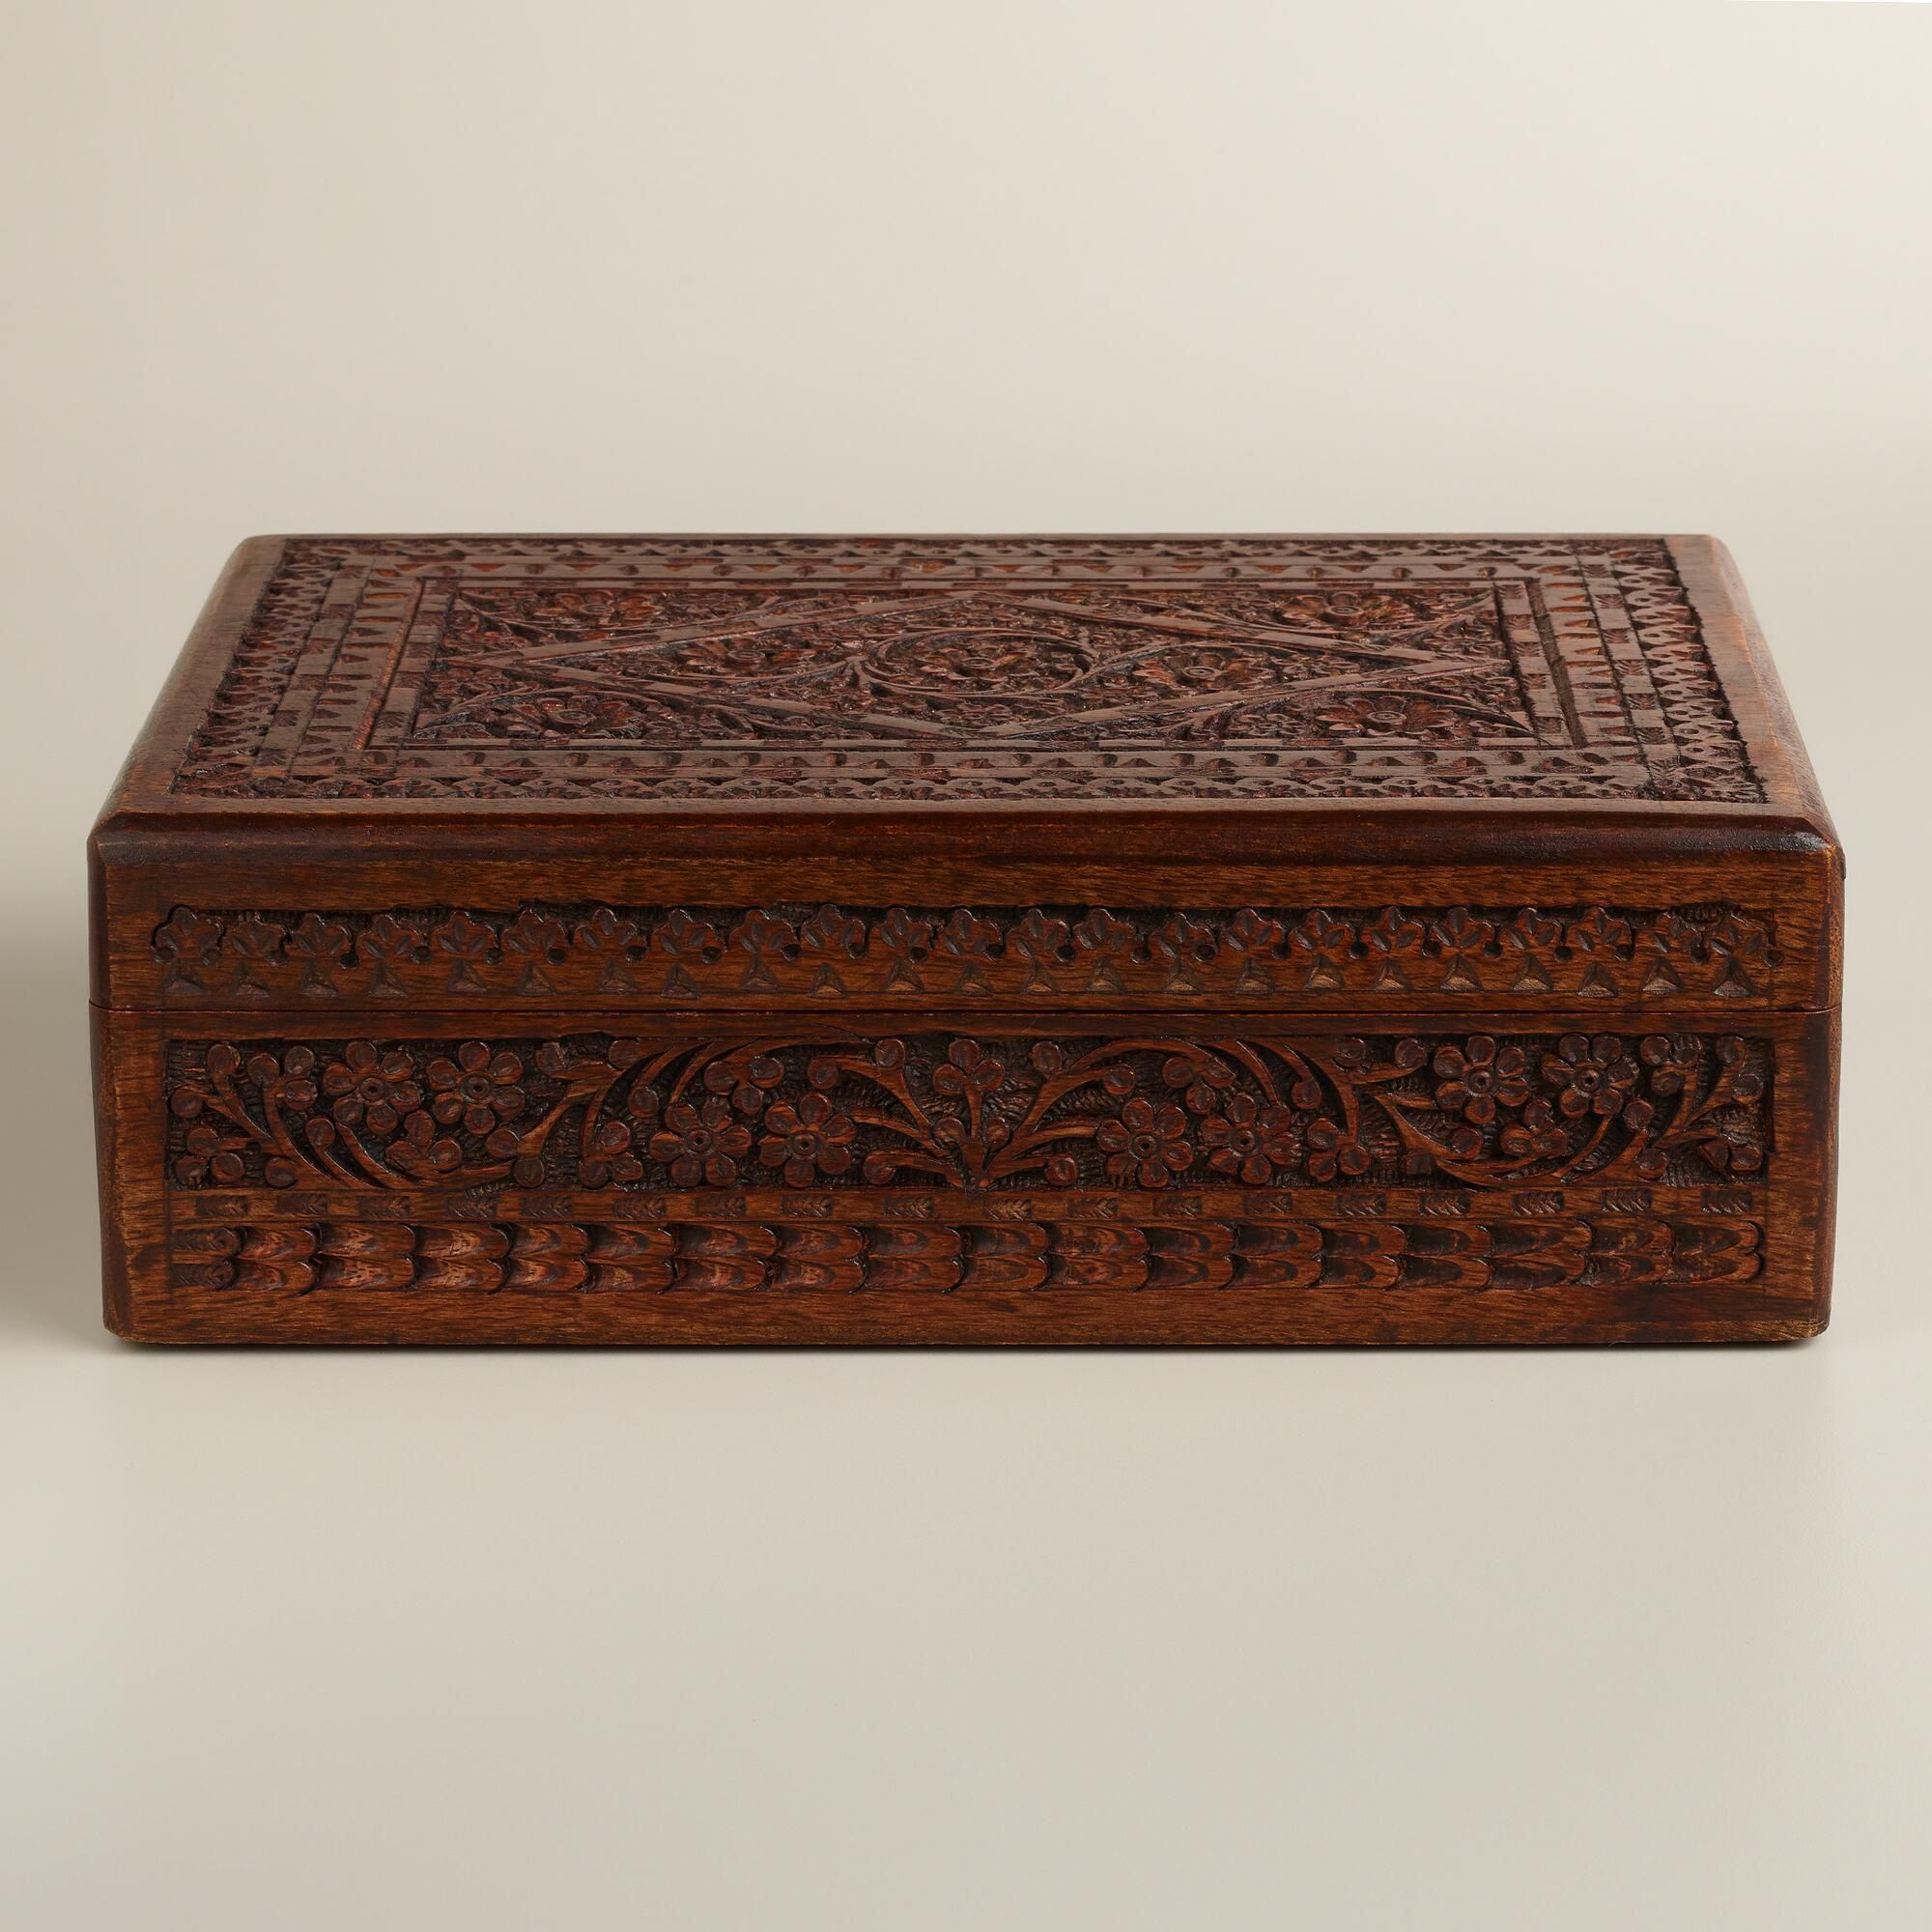 World Market Jewelry Box Best Espresso Carved Brooklyn Jewelry Box  World Market  Home Design Ideas